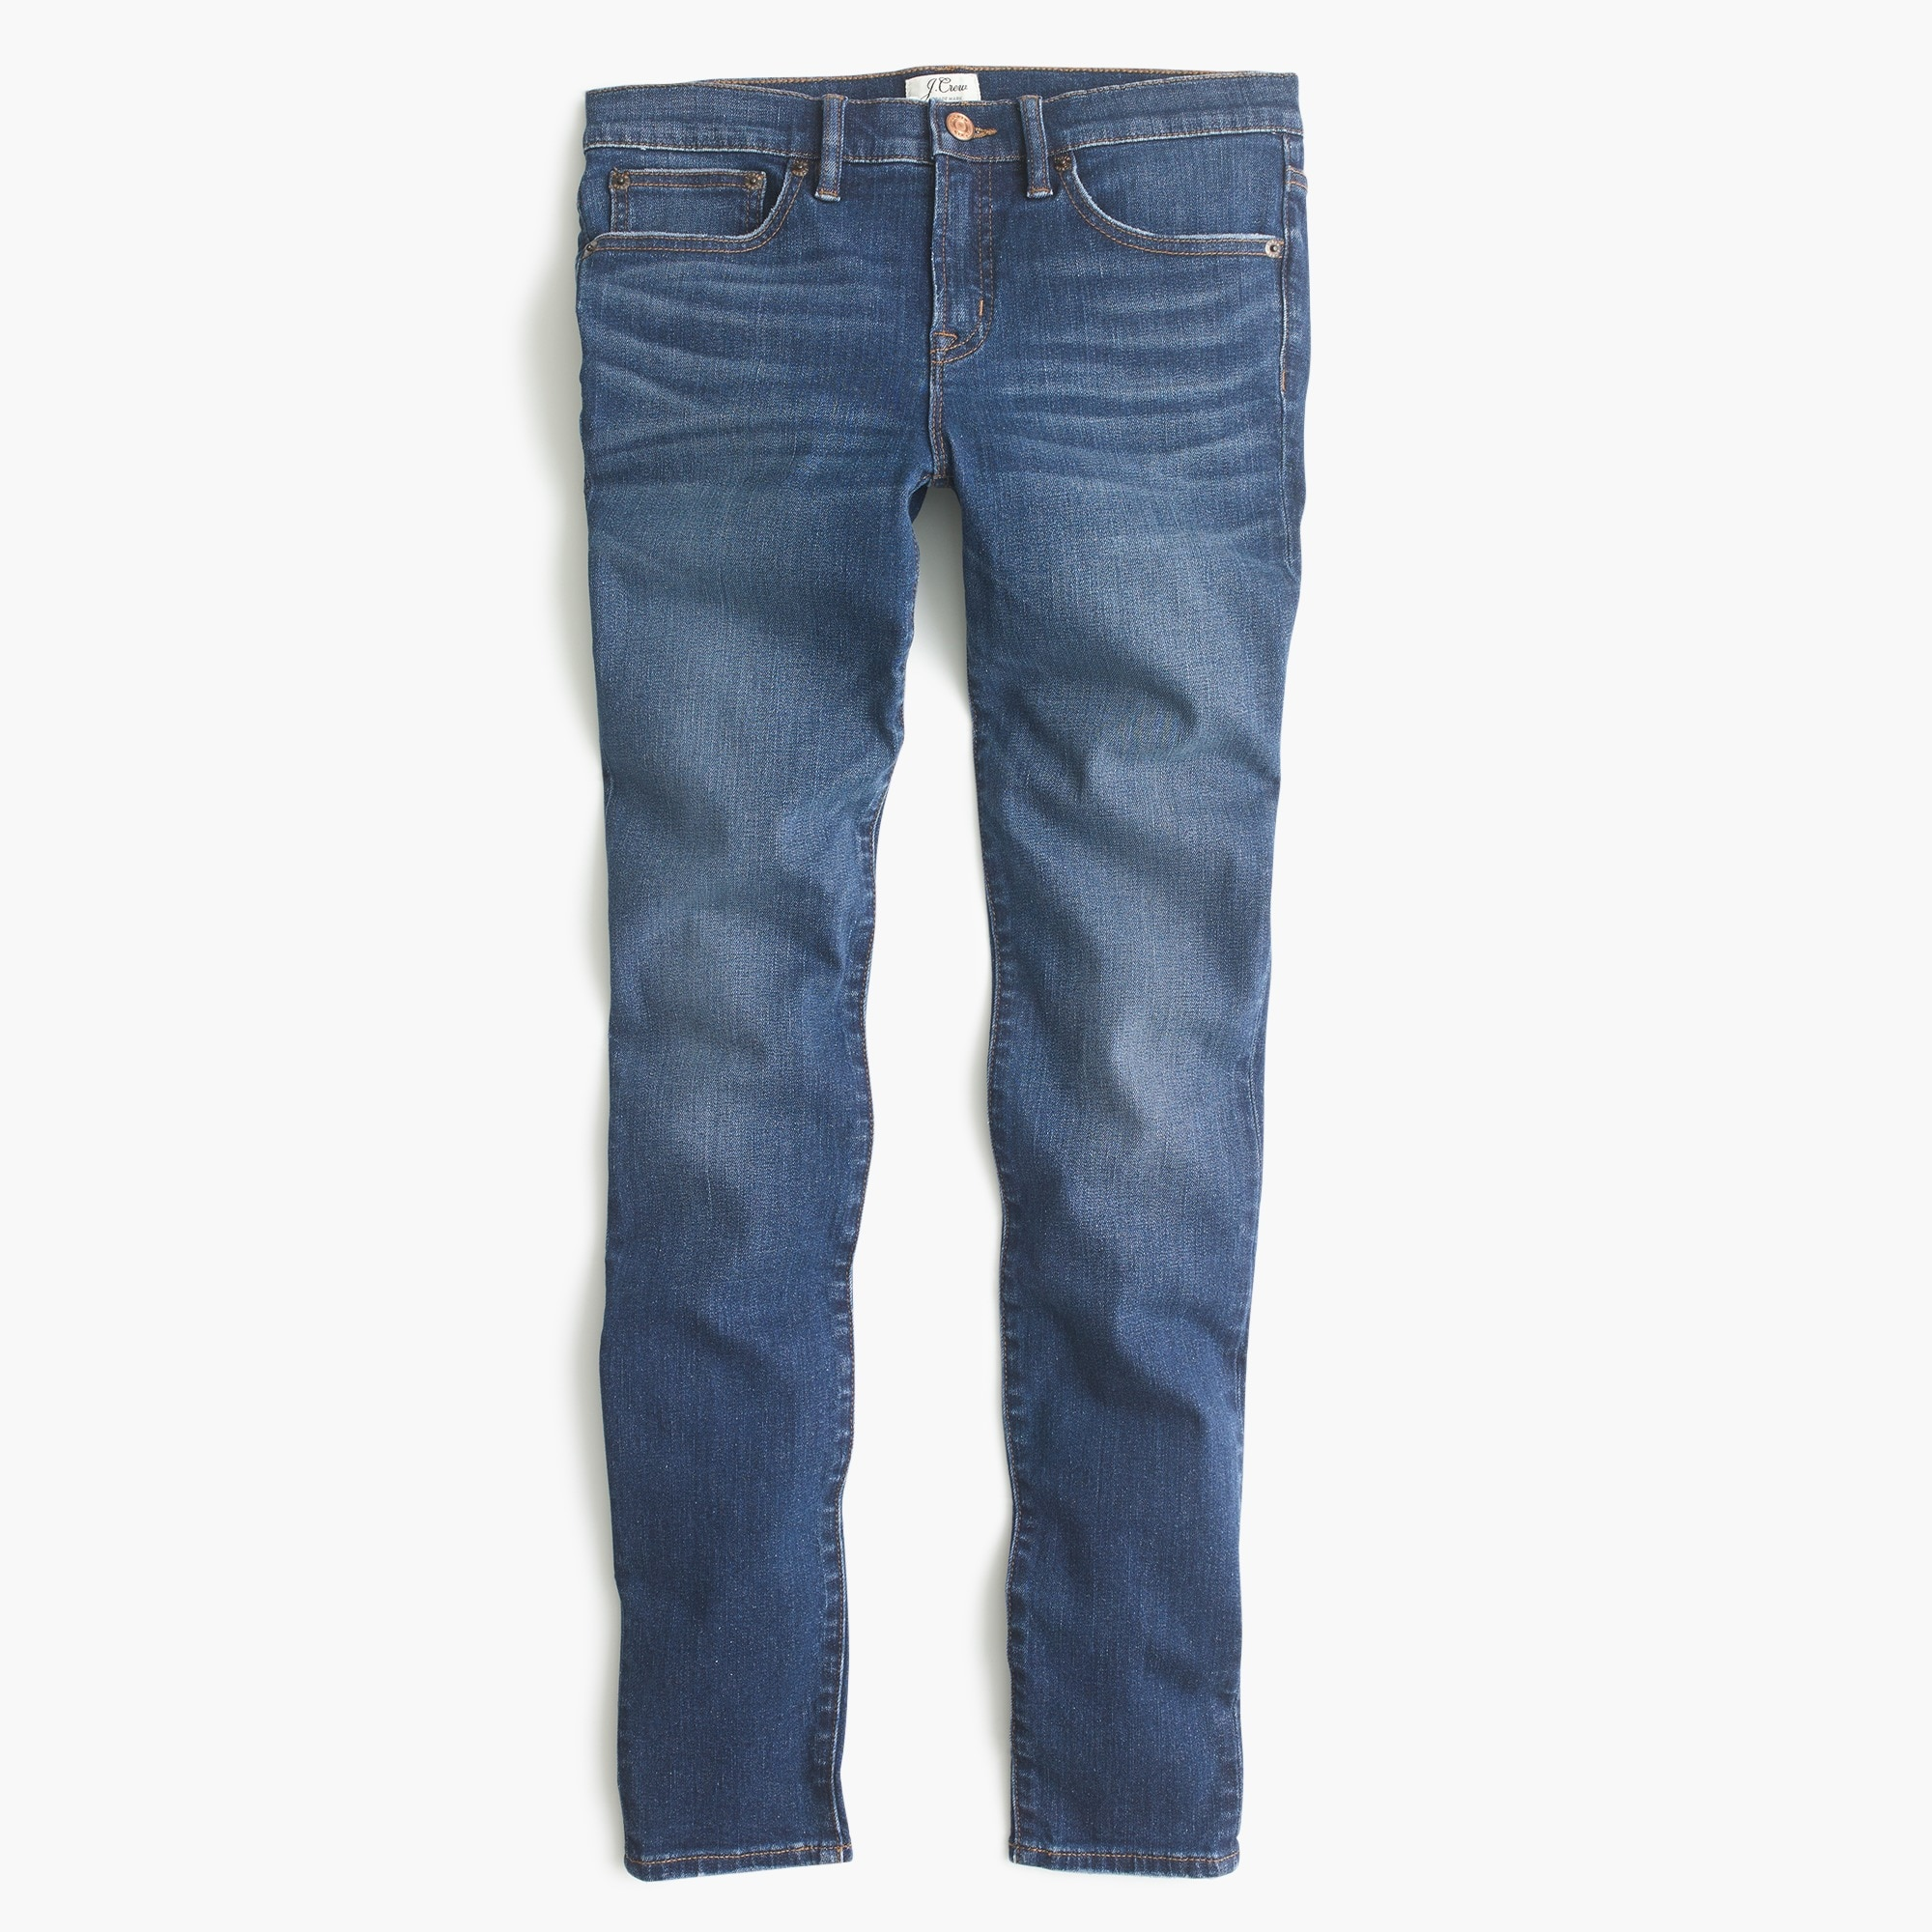 "Tall 8"" toothpick jean in Lyric wash"